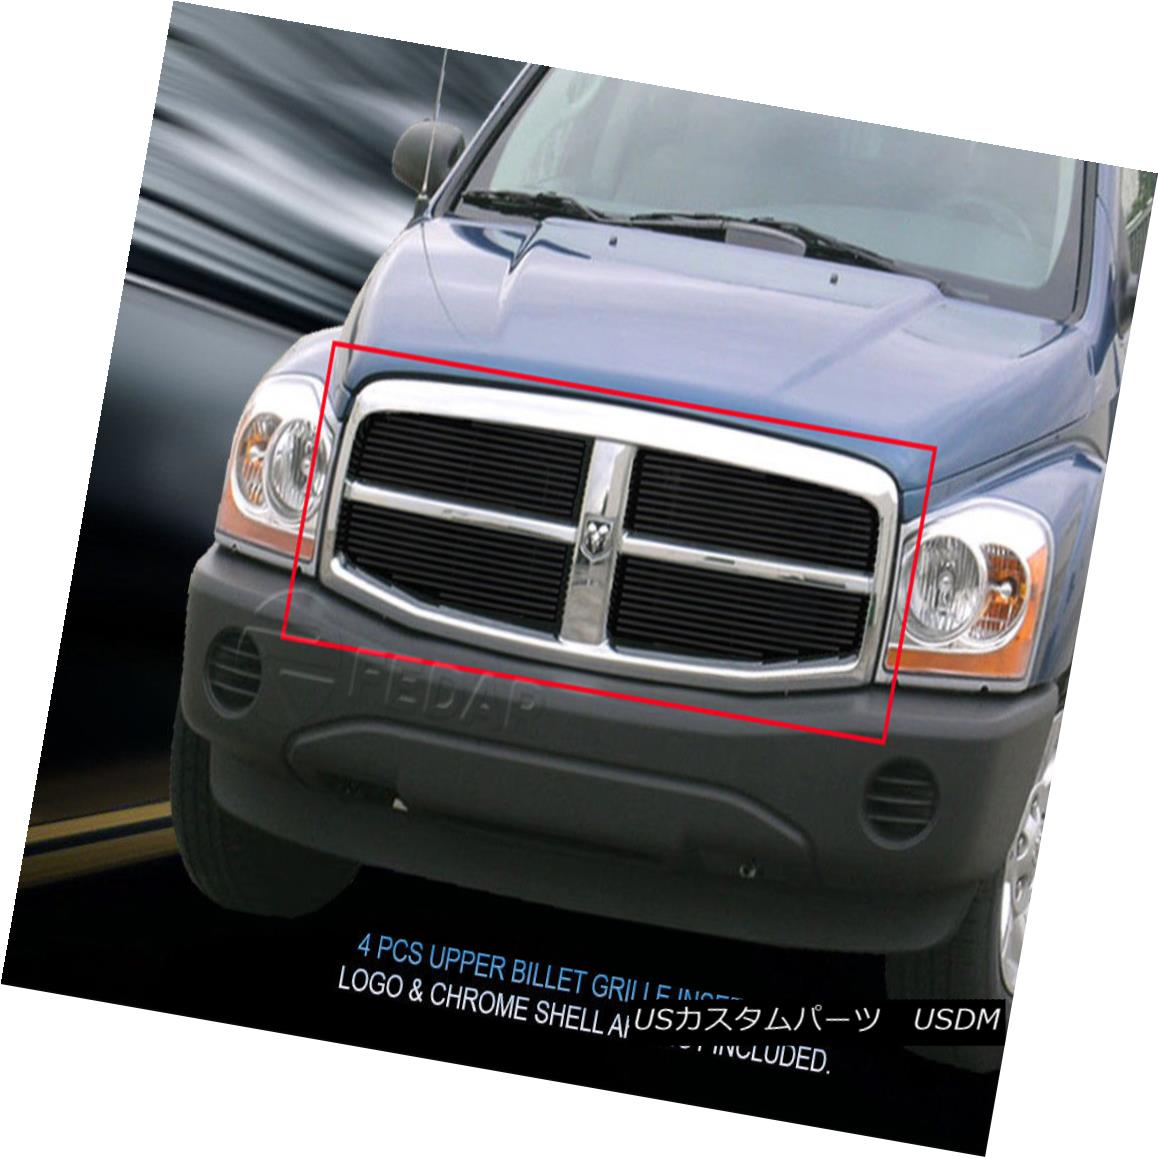 グリル Fedar Fits 2004-2006 Dodge Durango Black Main Upper Billet Grille Fedar Fitting 2004-2006 Dodge Durango Blackメインアッパービレットグリル